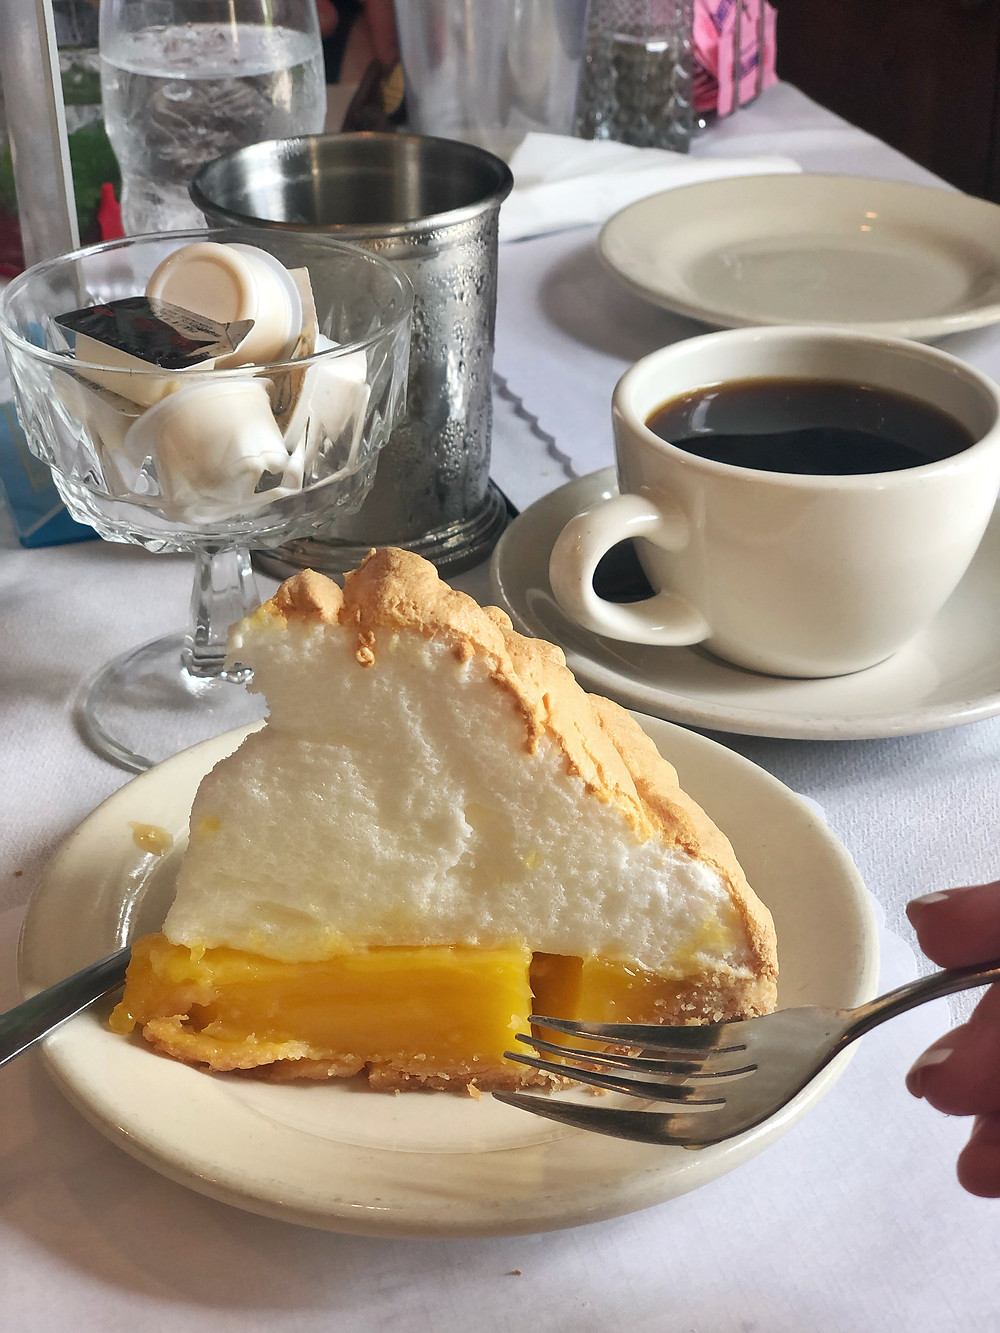 Homemade lemon meringue pie and coffee at Kurtz restaurant in Bardstown Kentucky, fried chicken, Bourbon Trail travel guide, where to eat in Bardstown, best restaurants, travel blog